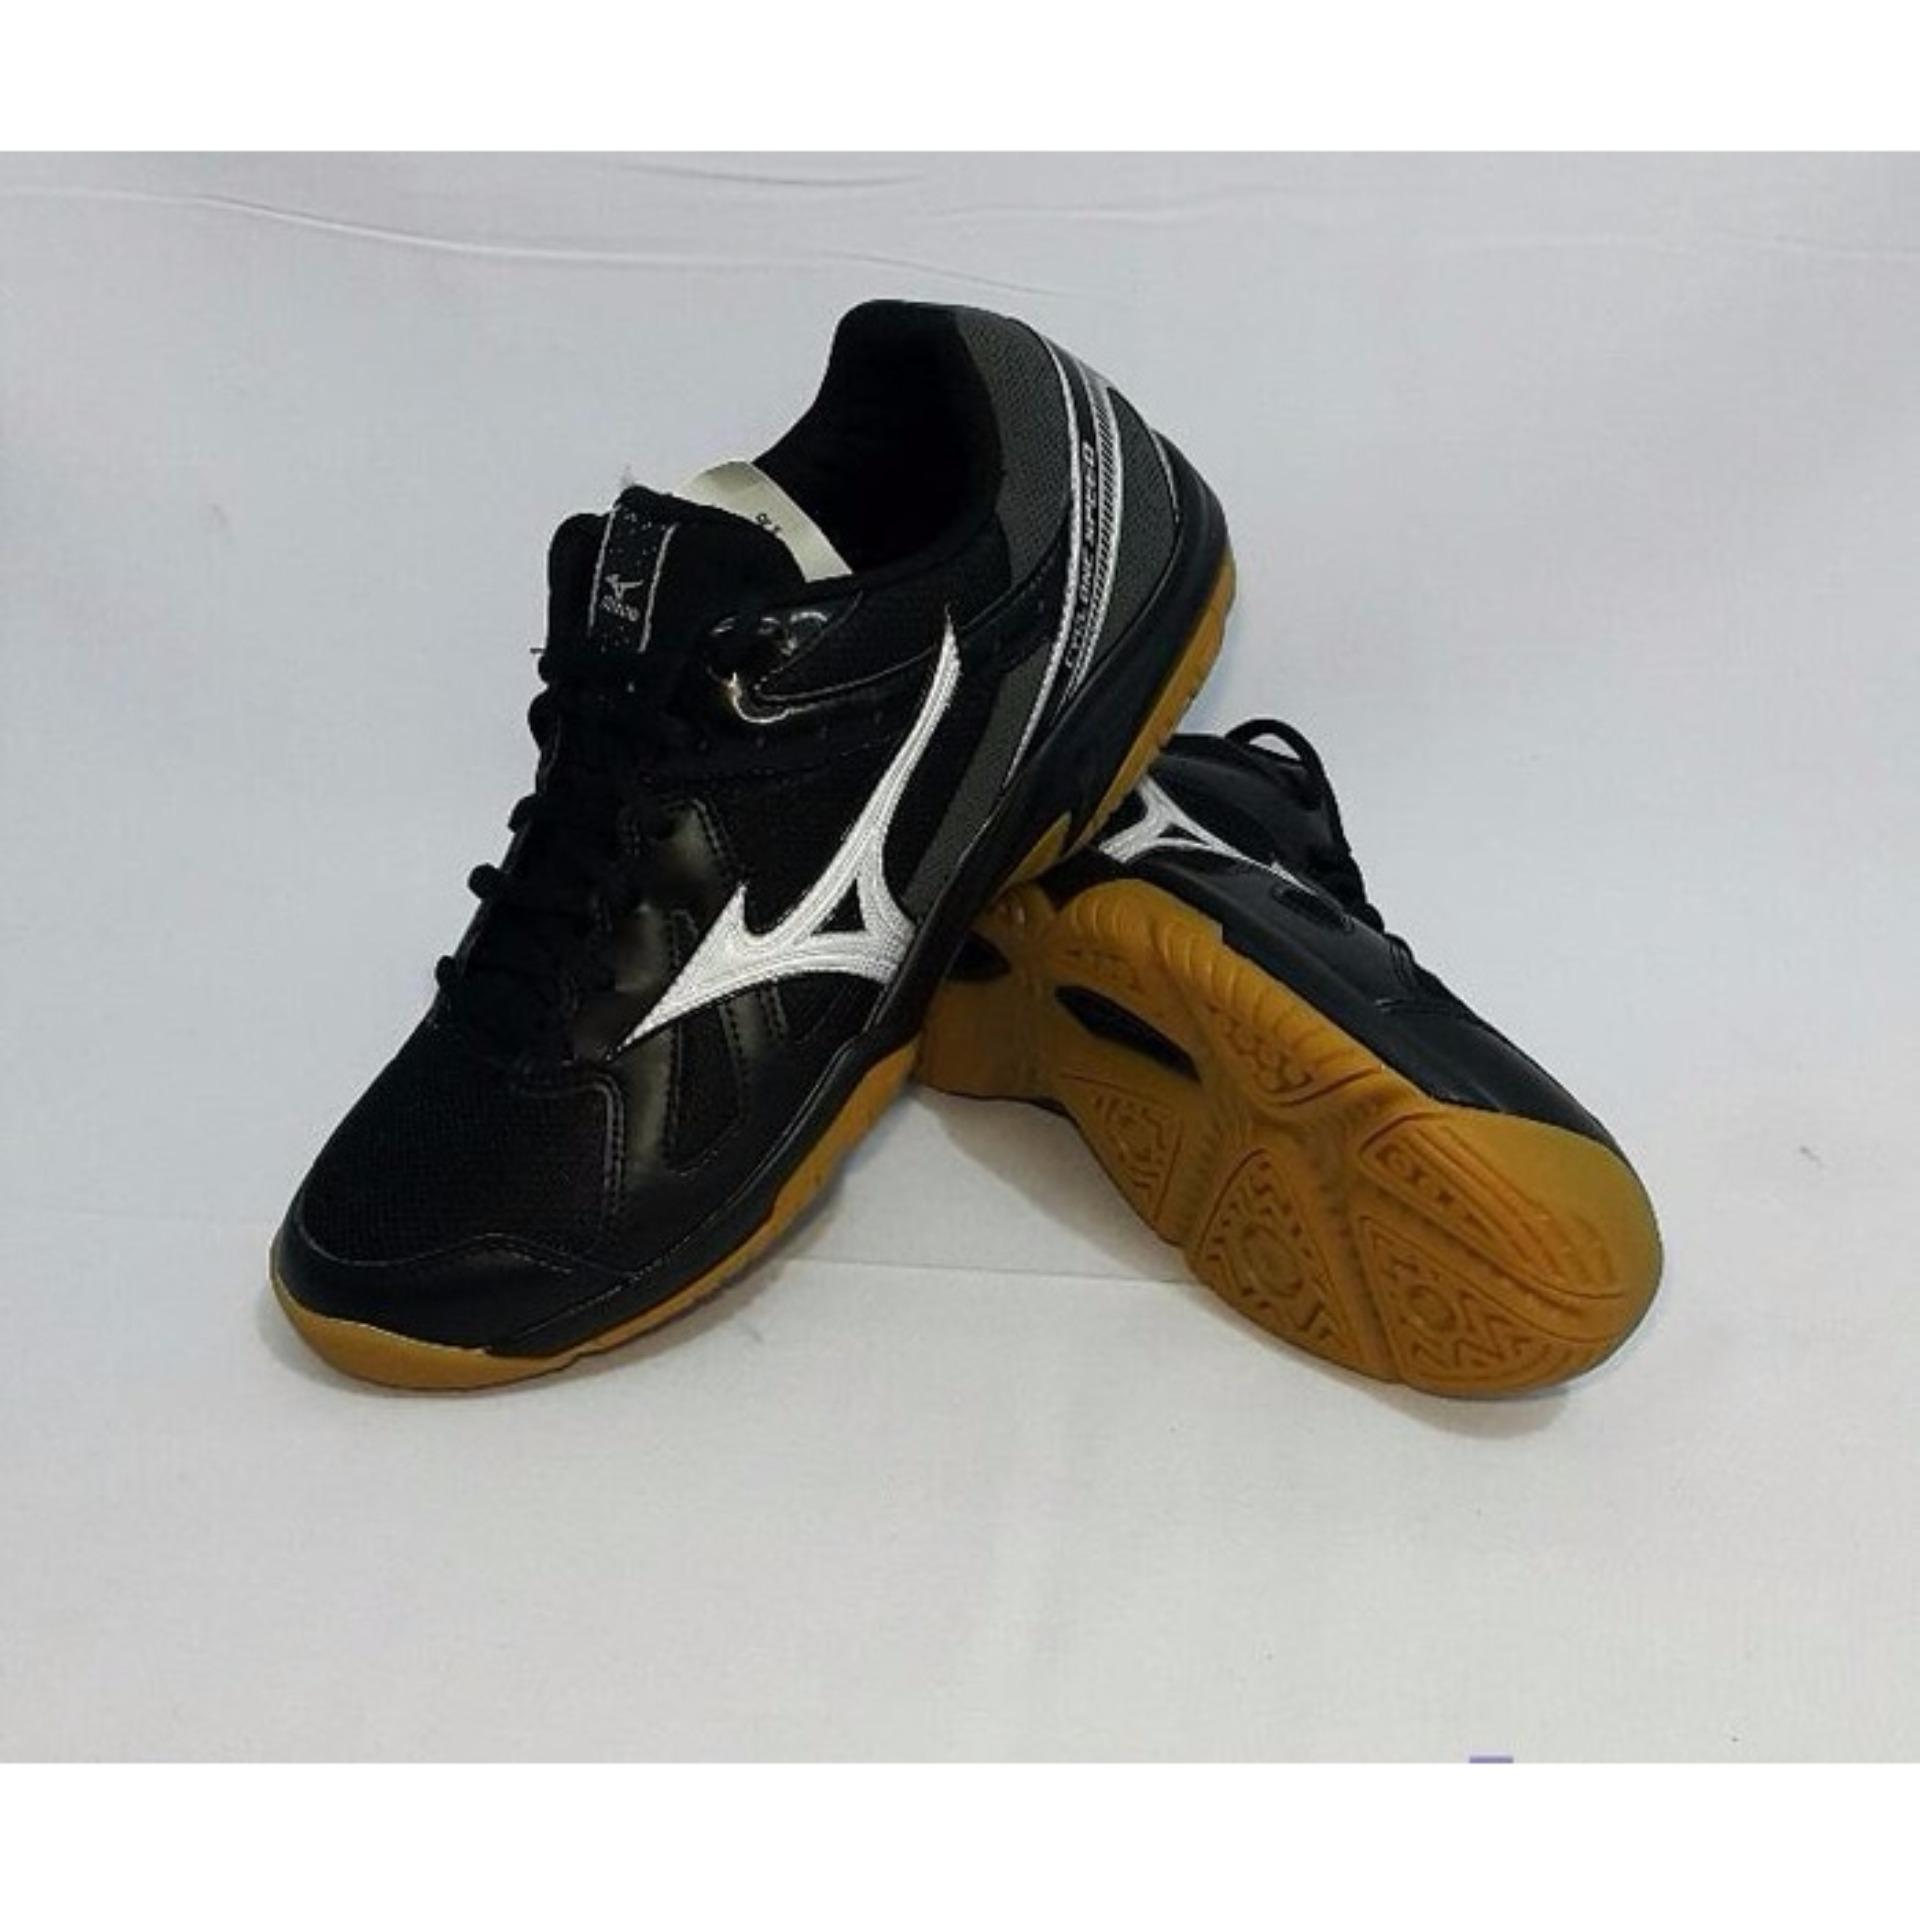 Sepatu voli Mizuno Cyclone Speed - Black  Silver  Dark Shadow